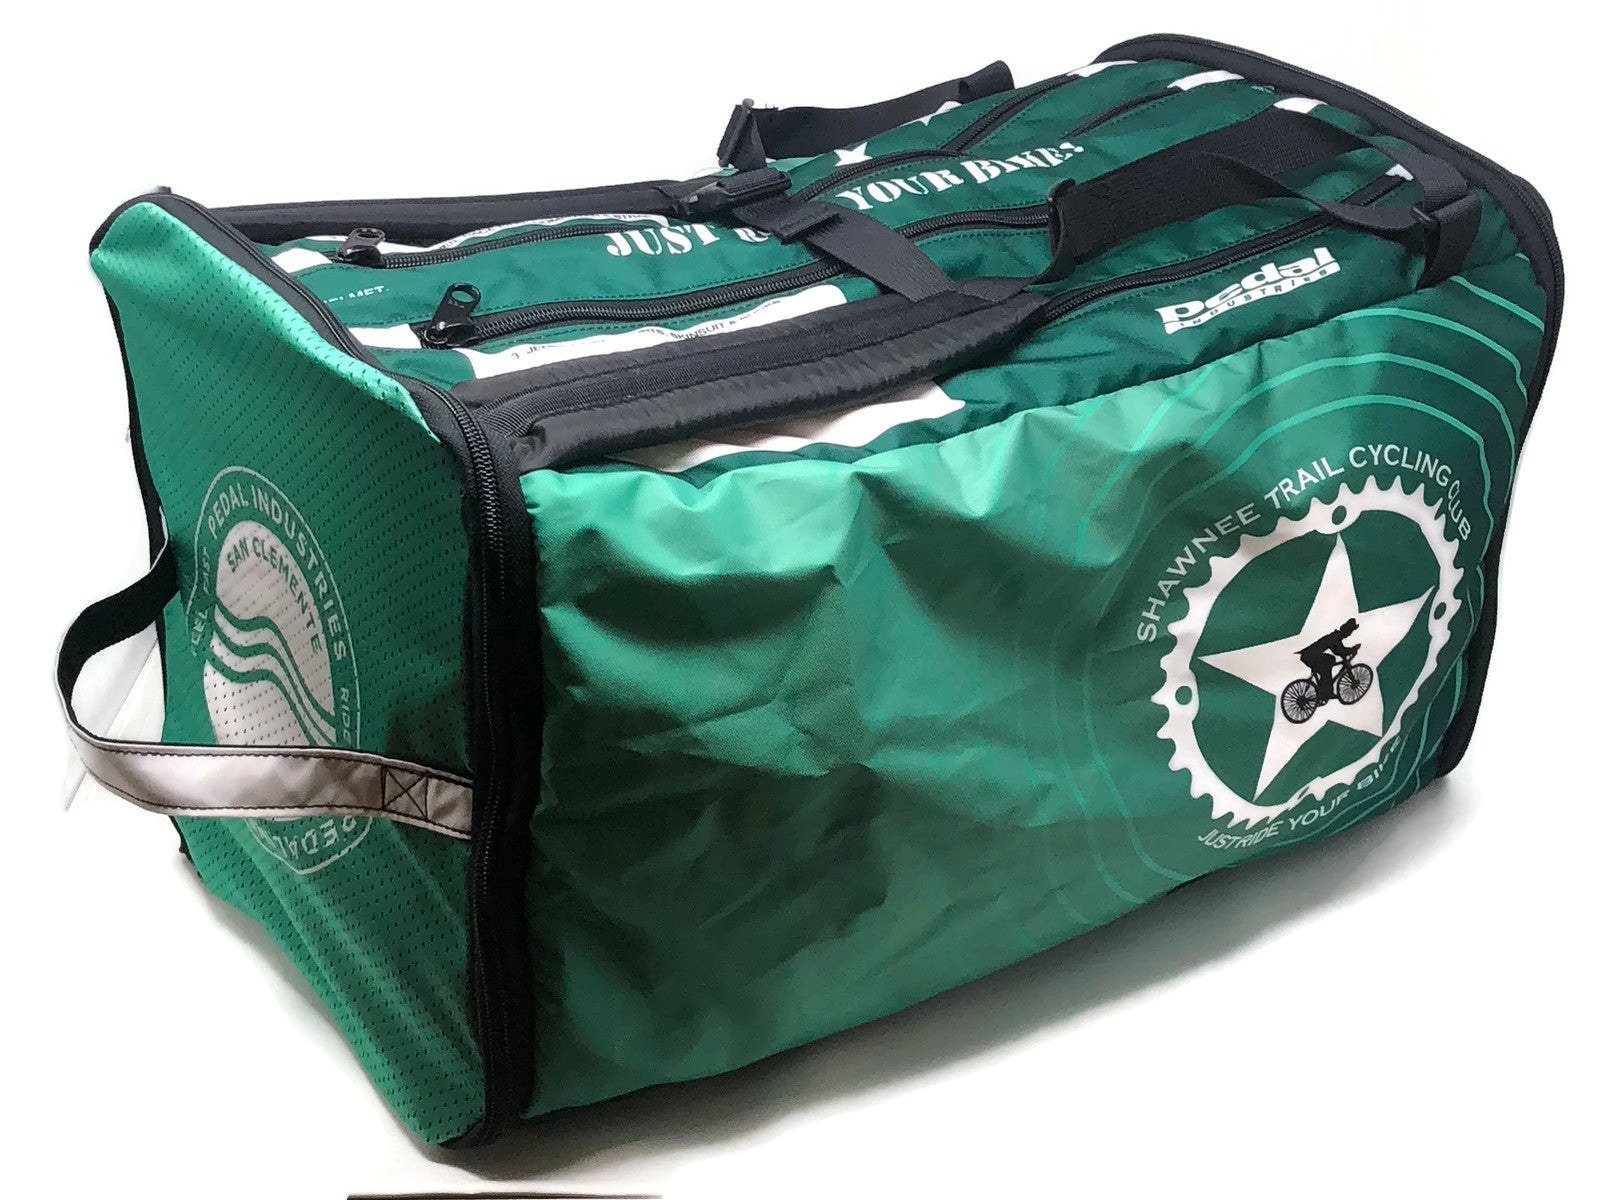 Shawnee Trail CC RACEDAY BAG - ships in about 3 weeks